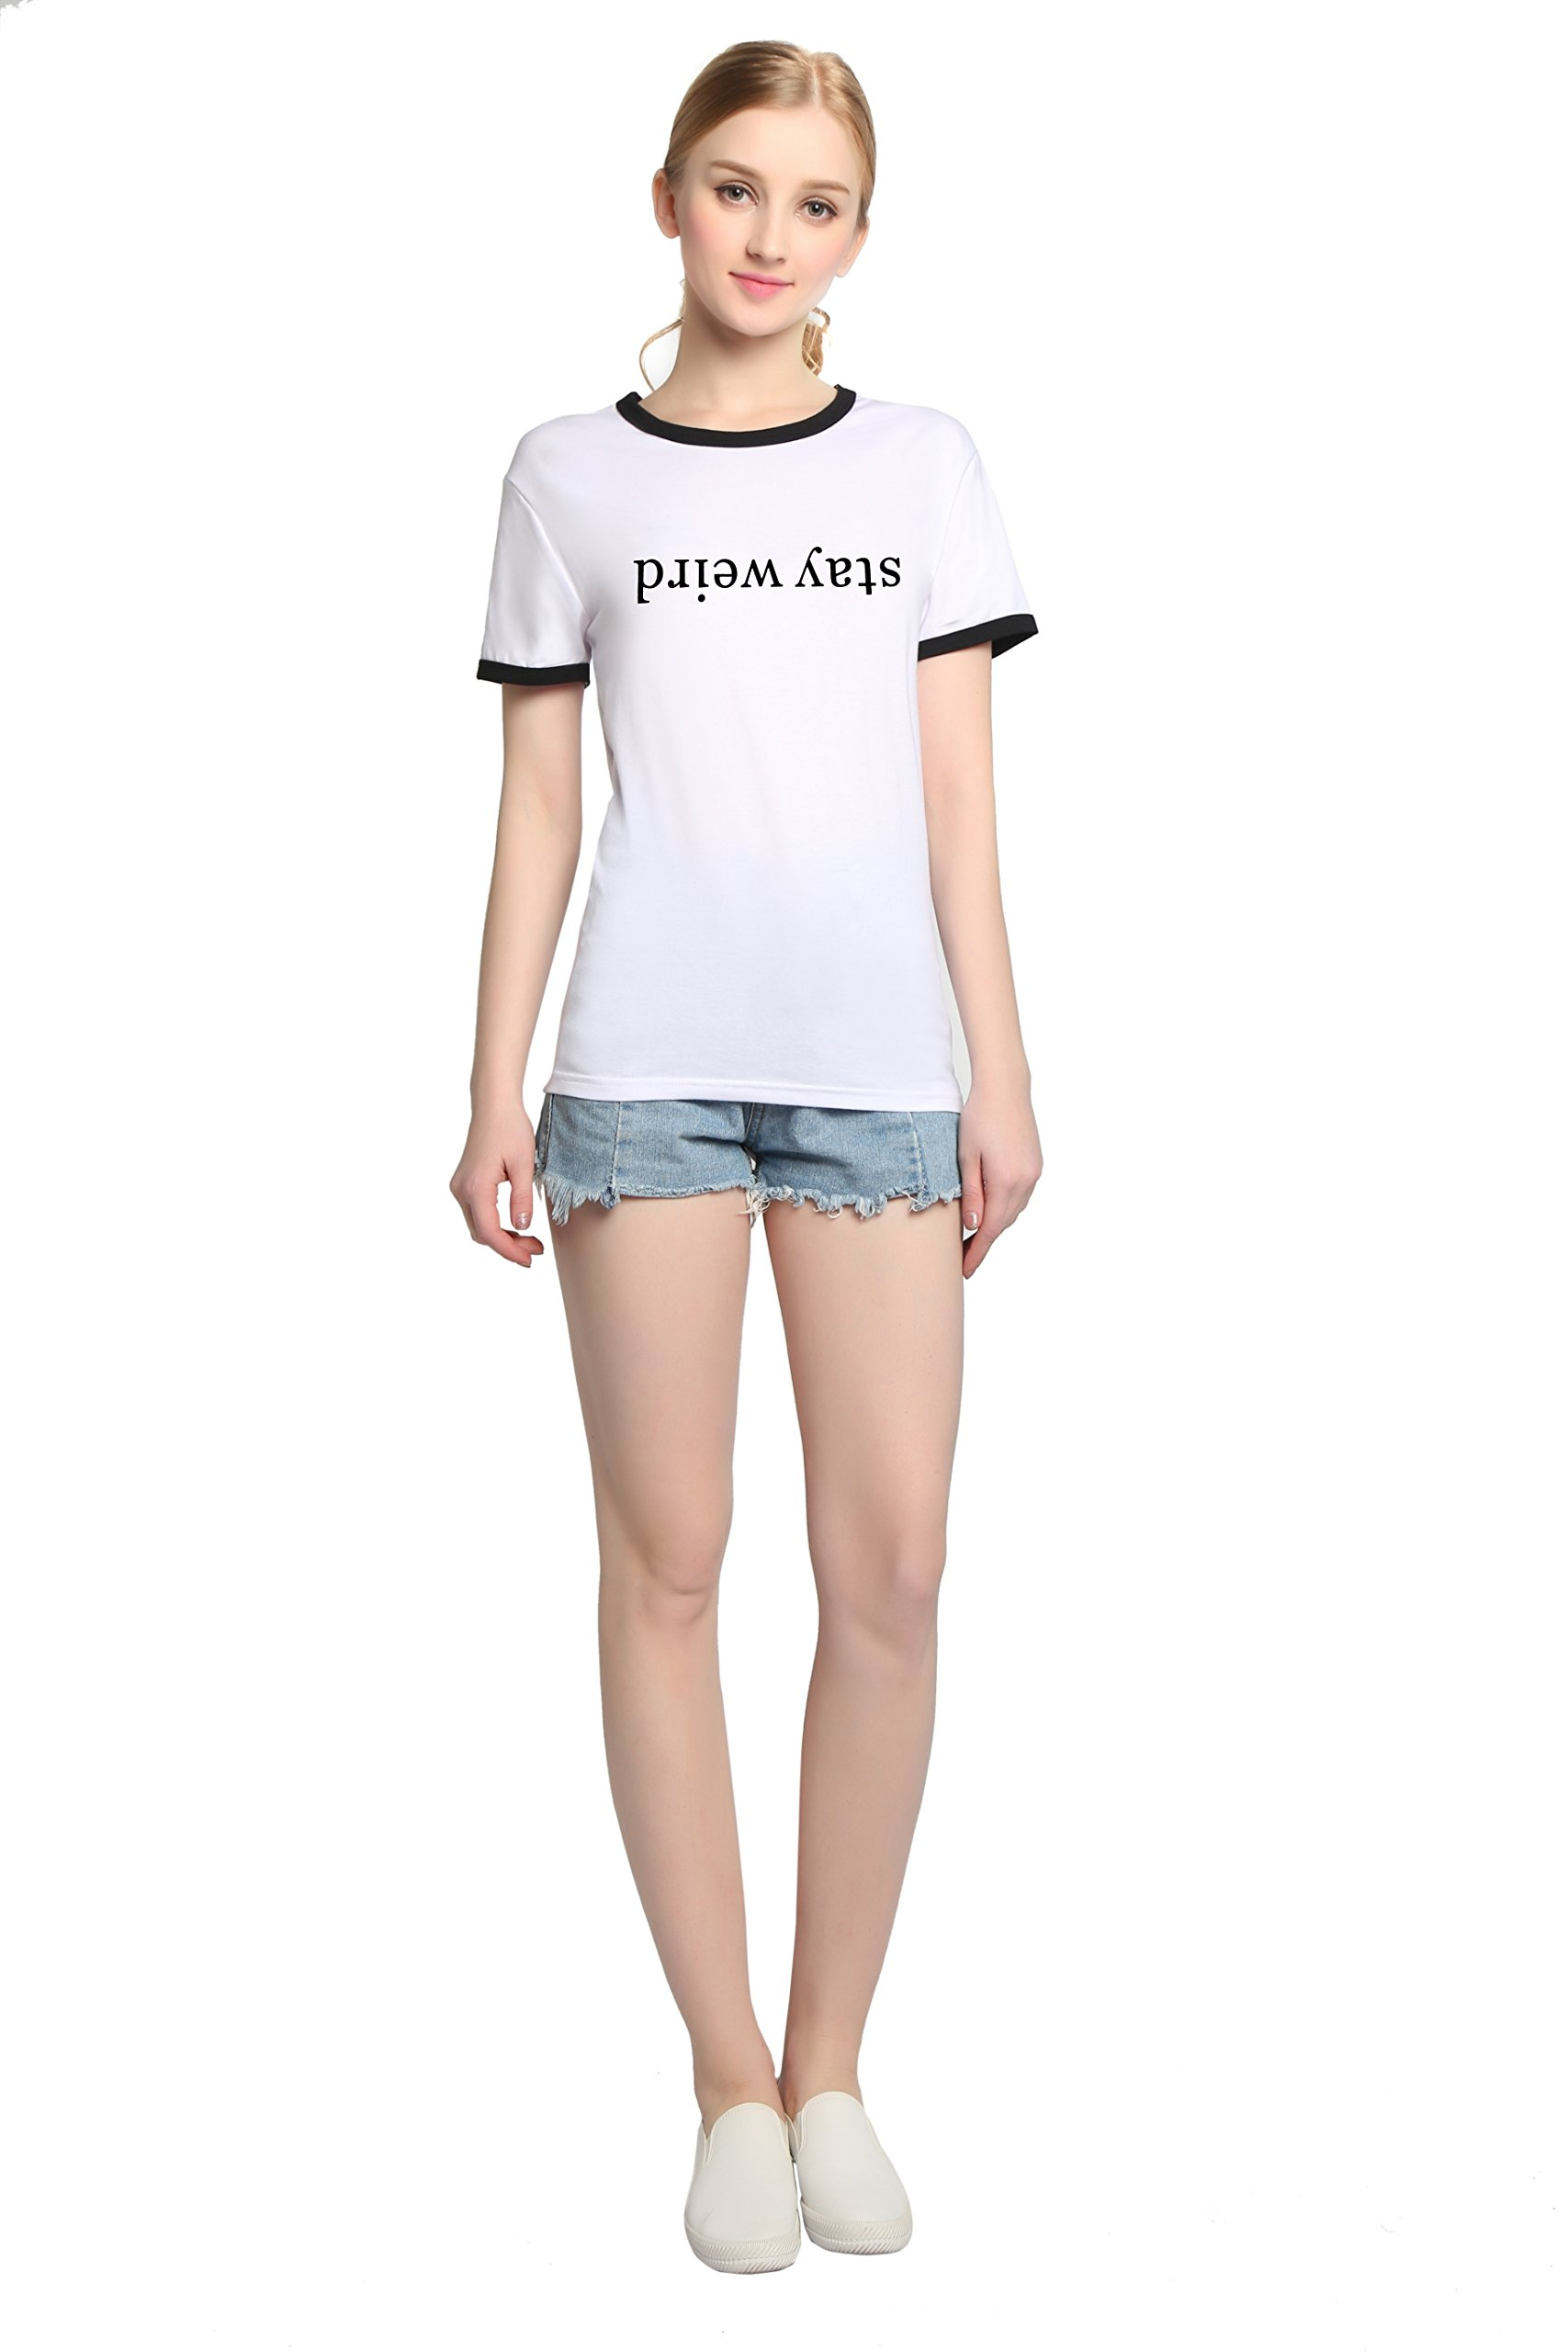 PINJIA Womens Cotton Letter Printed Pullover Tshirts Top Tees(MX15)(XXXL, White Stay Weird)